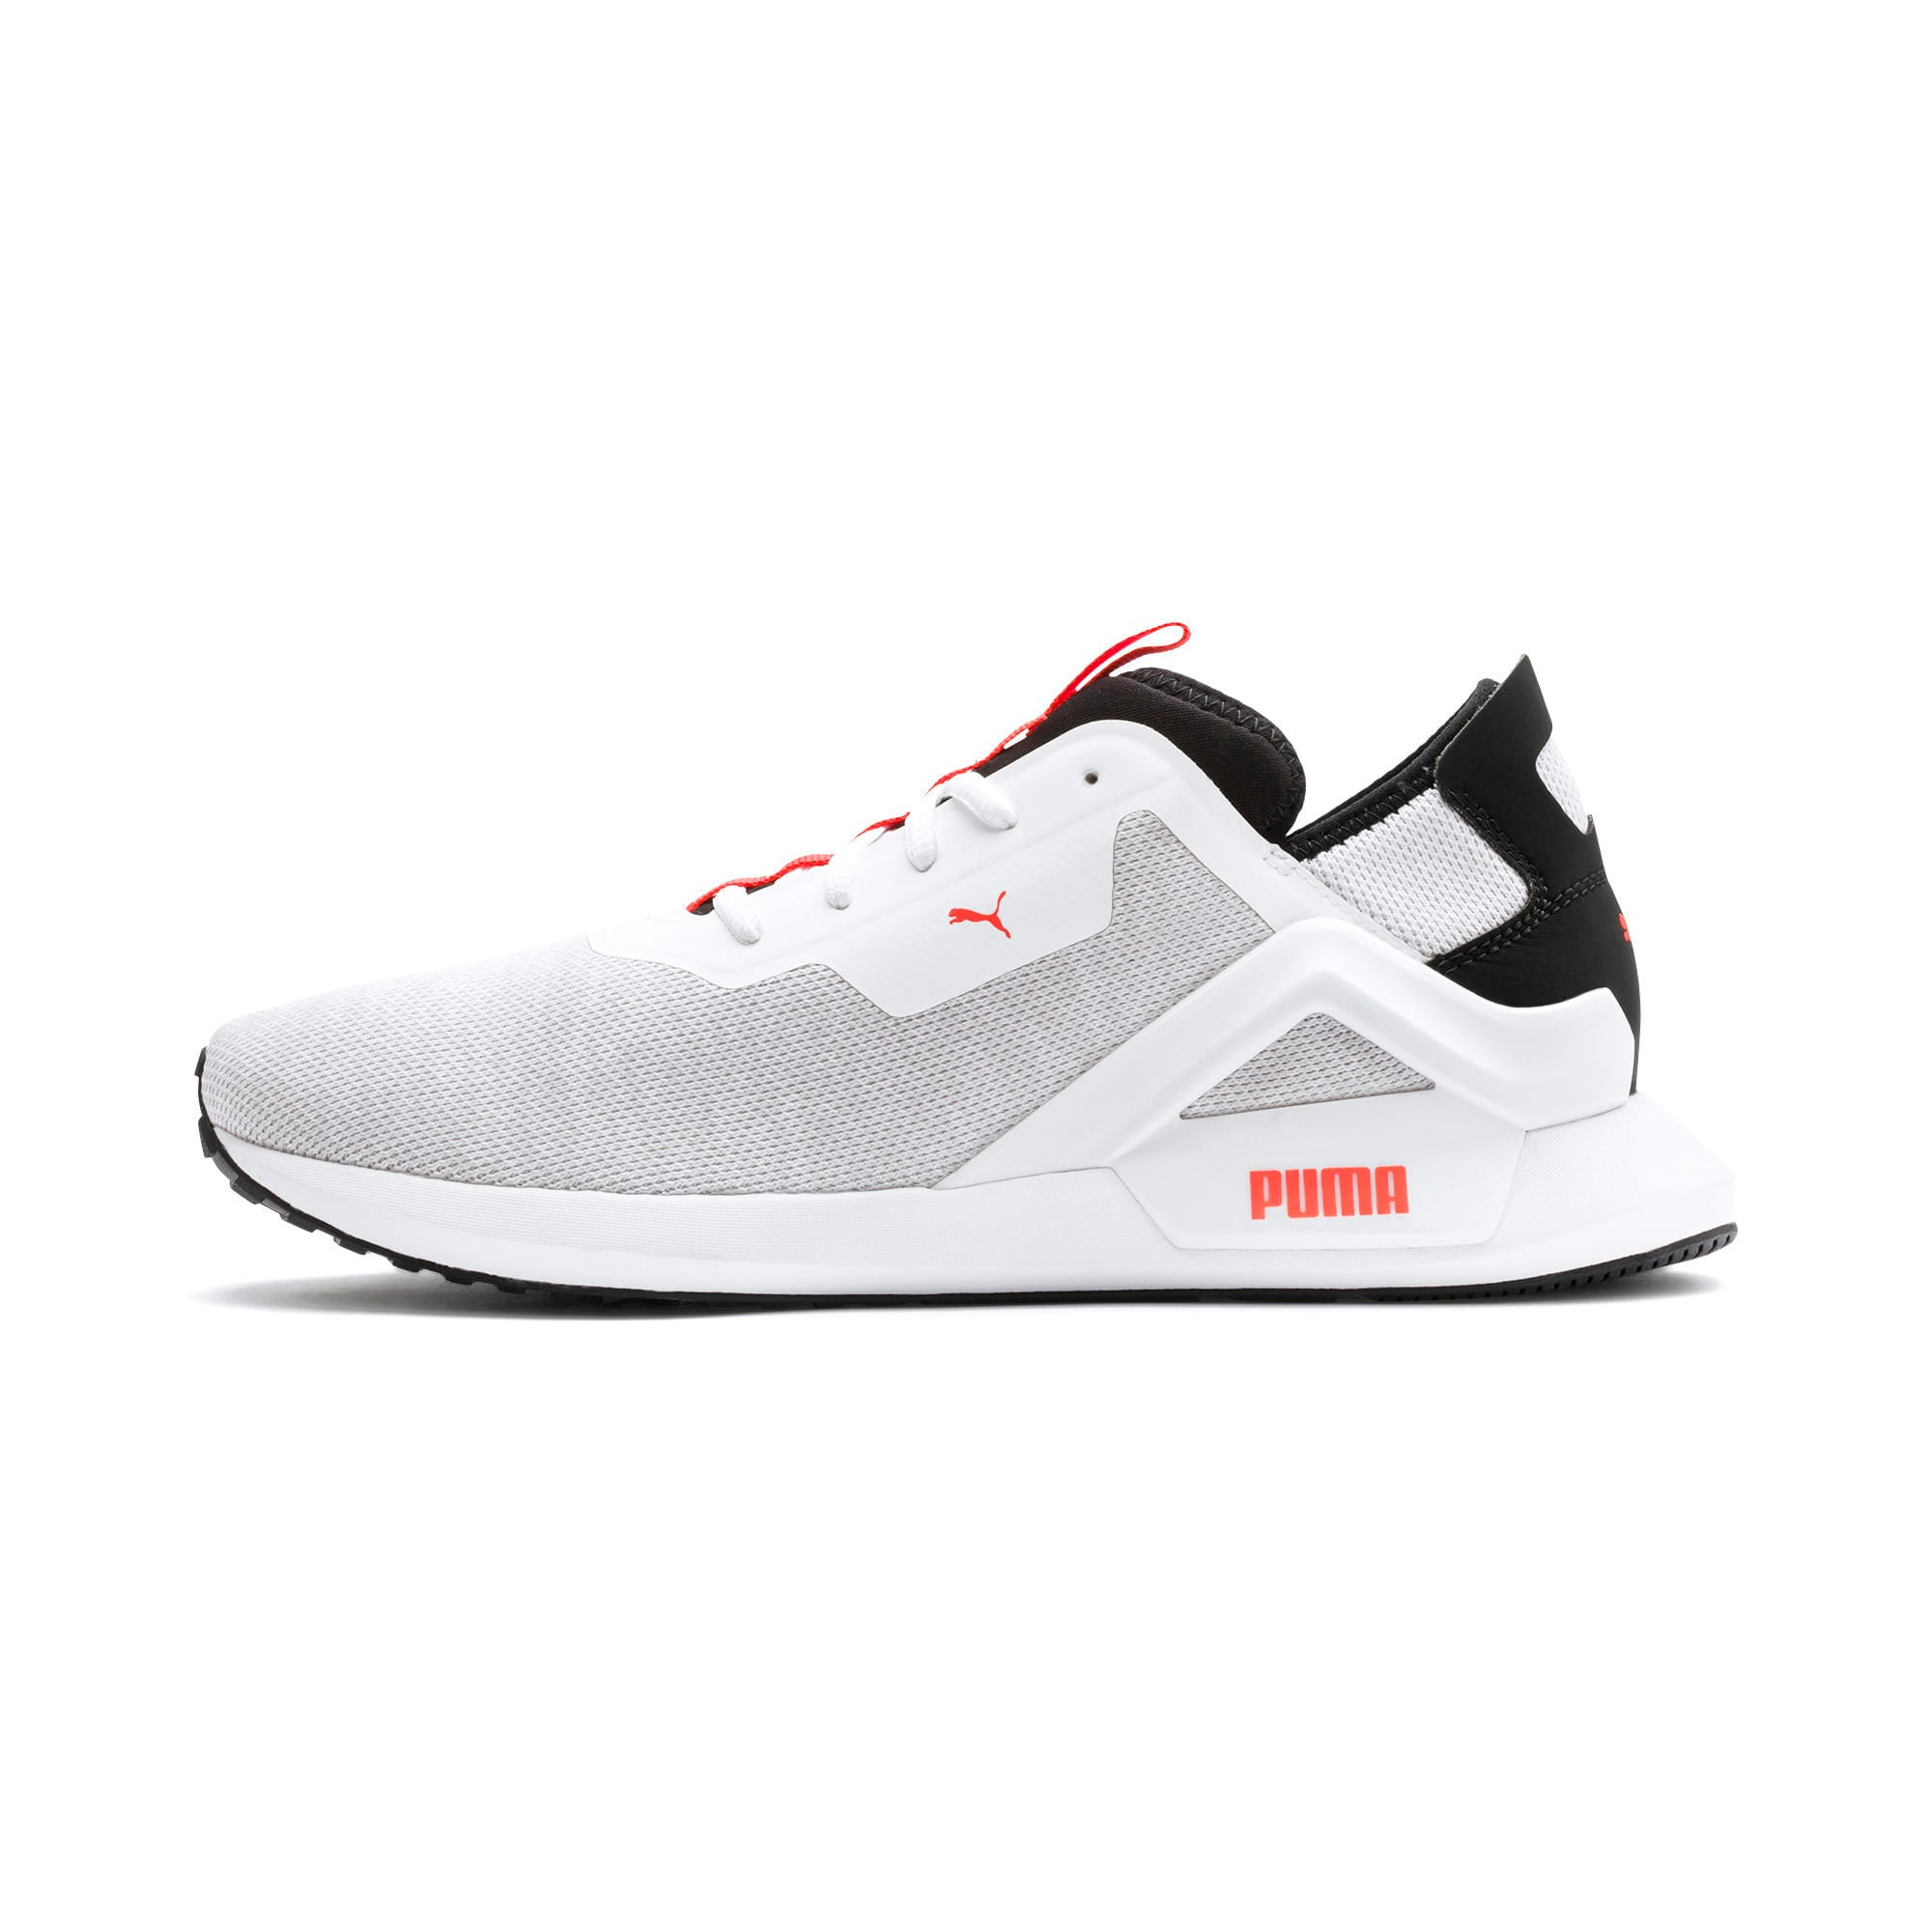 Thumbnail 1 of Rogue X Knit Men's Trainers, White-Black-Nrgy Red, medium